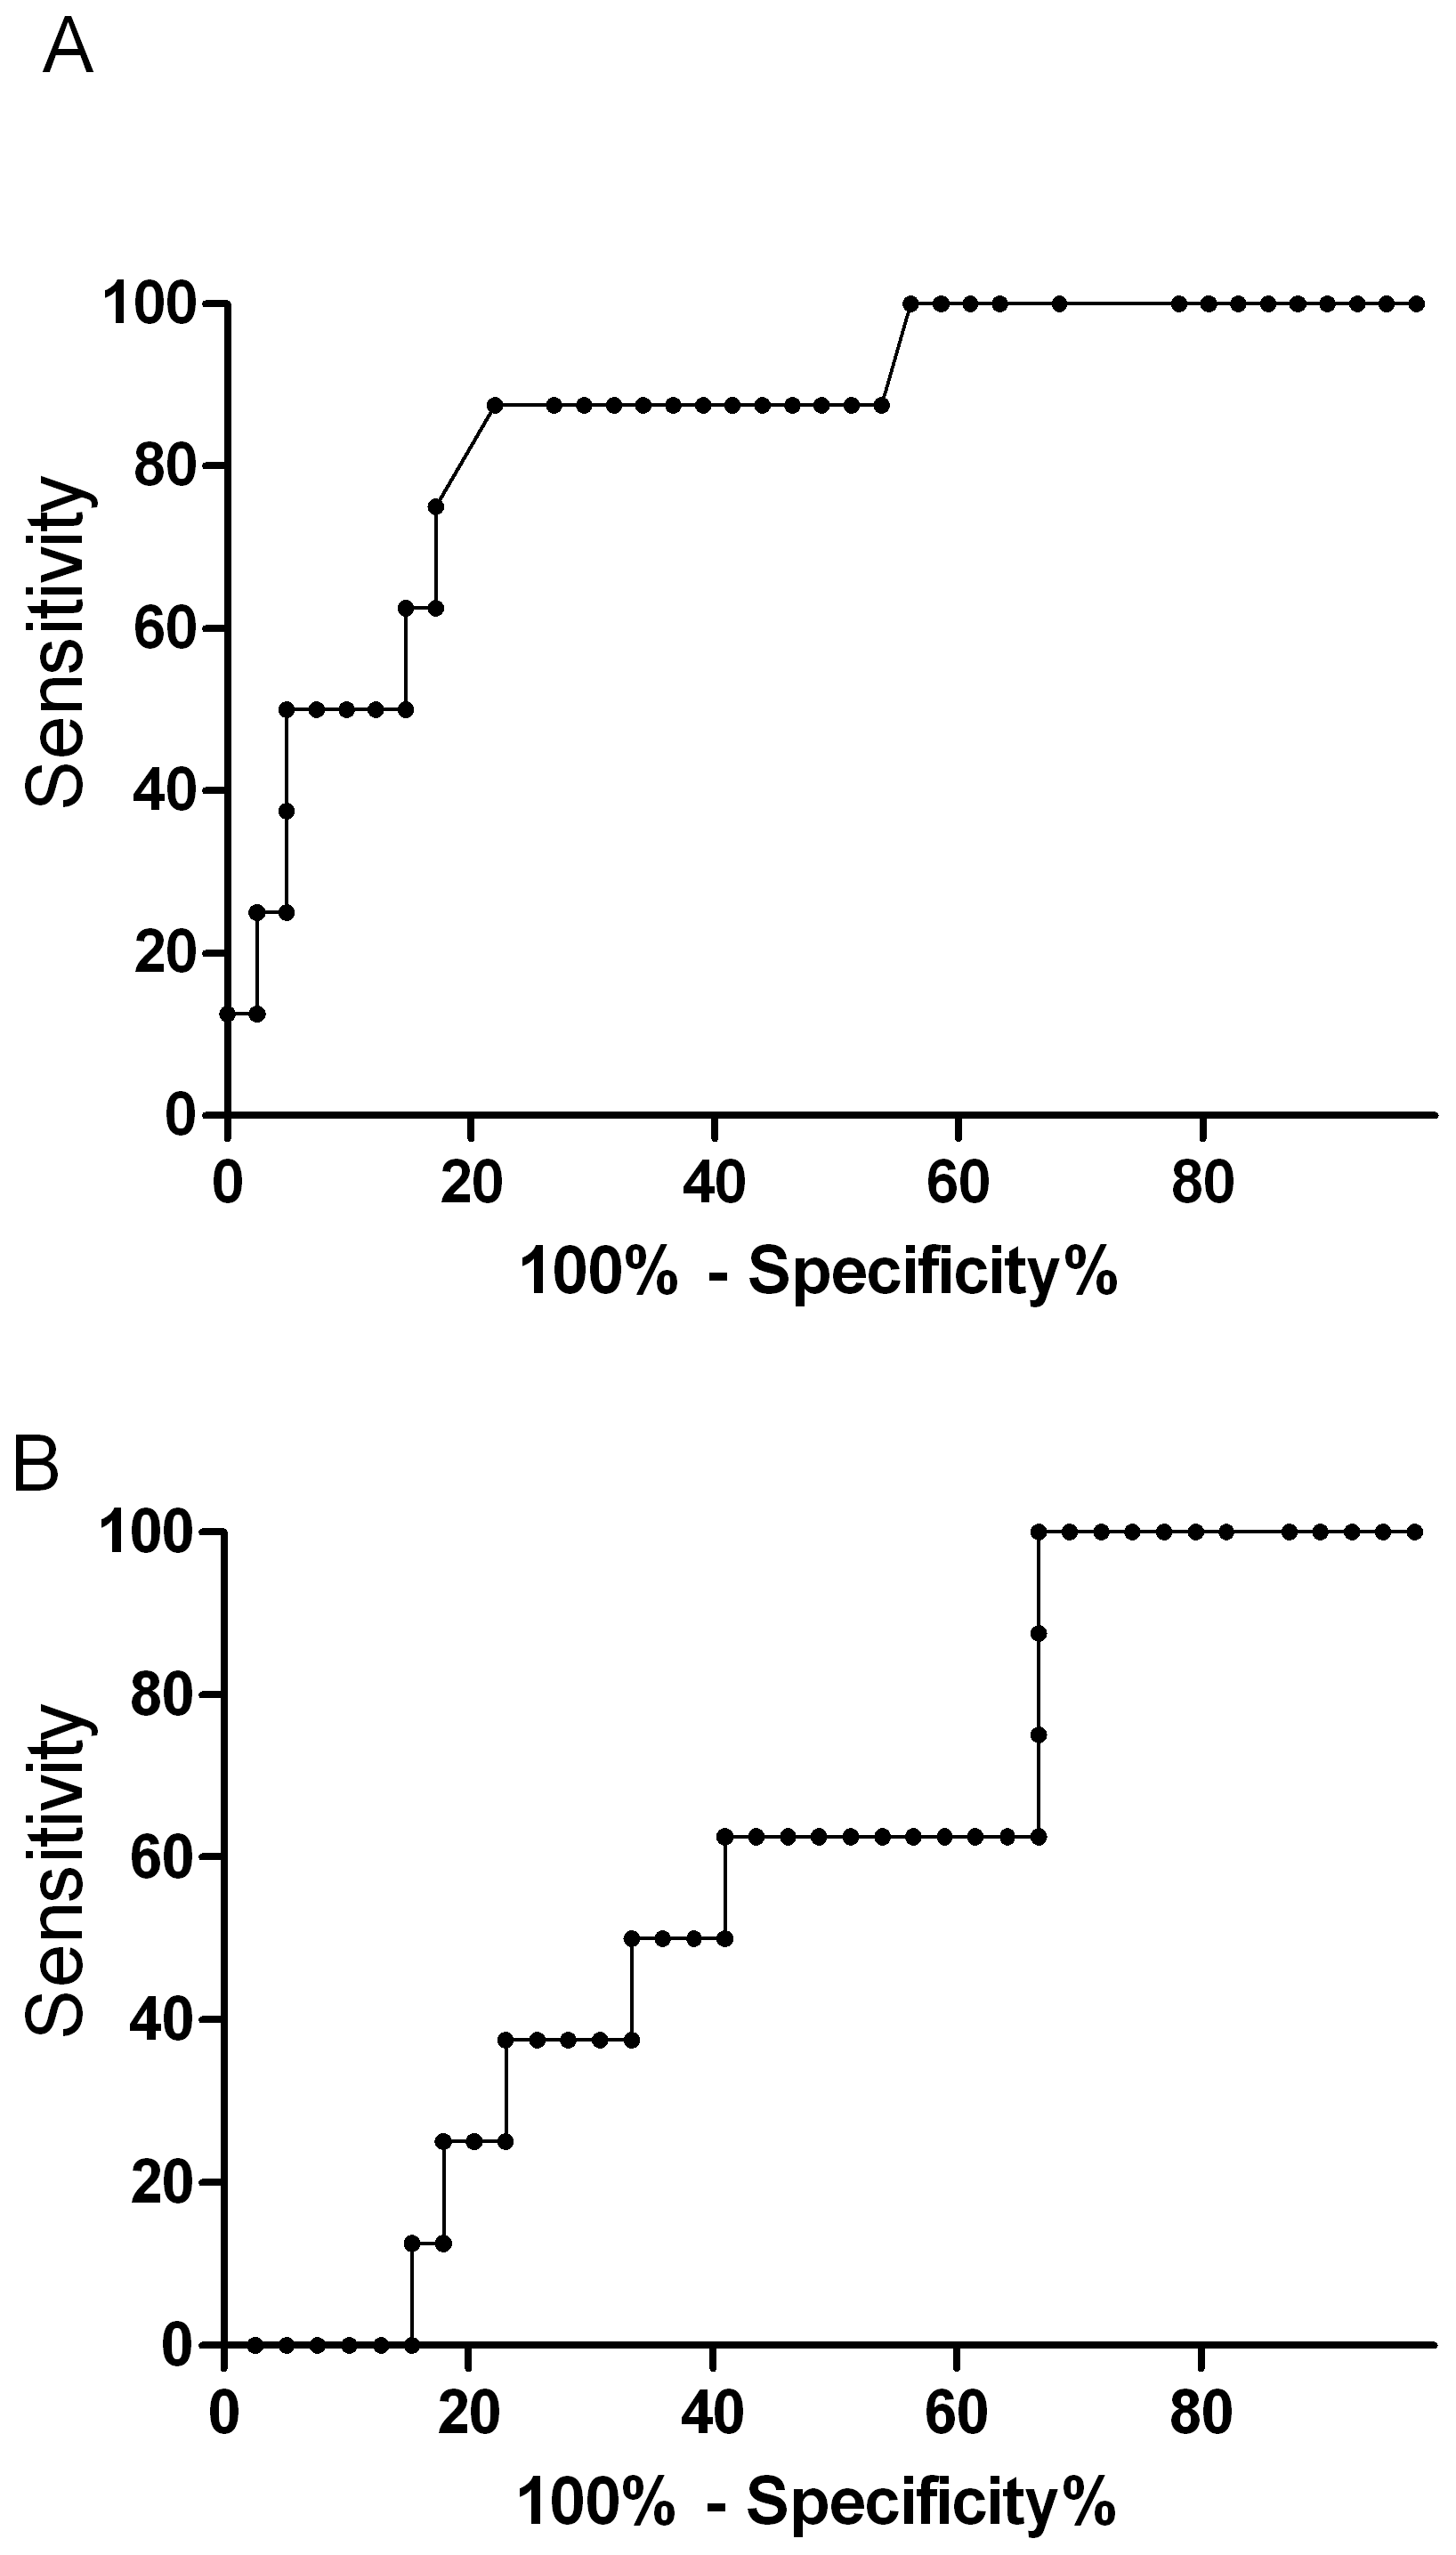 Top panel is the nonparametric receiver operating curve (ROC) assessing asymmetrical dimethylarginine (AUROC, 0.85; 95%CI 0.71–0.99) and the bottom panel venous lactate (AUROC 0.63; 95%CI 0.41–0.83) as prognostic markers for mortality in severe malaria (p=0.003).